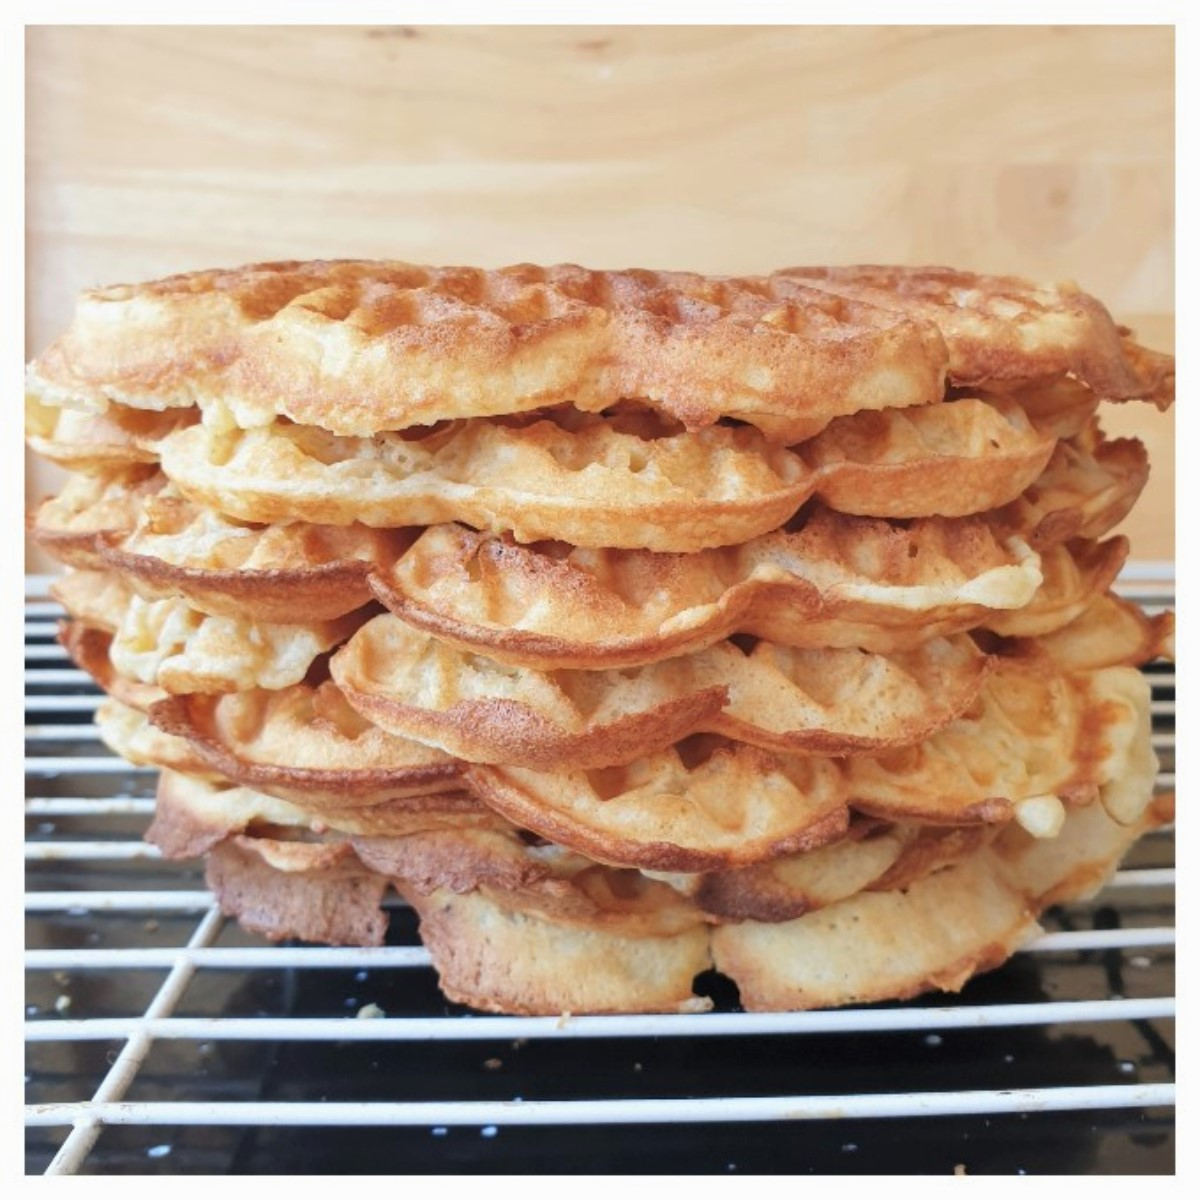 A pile of waffles on a cooling rack.